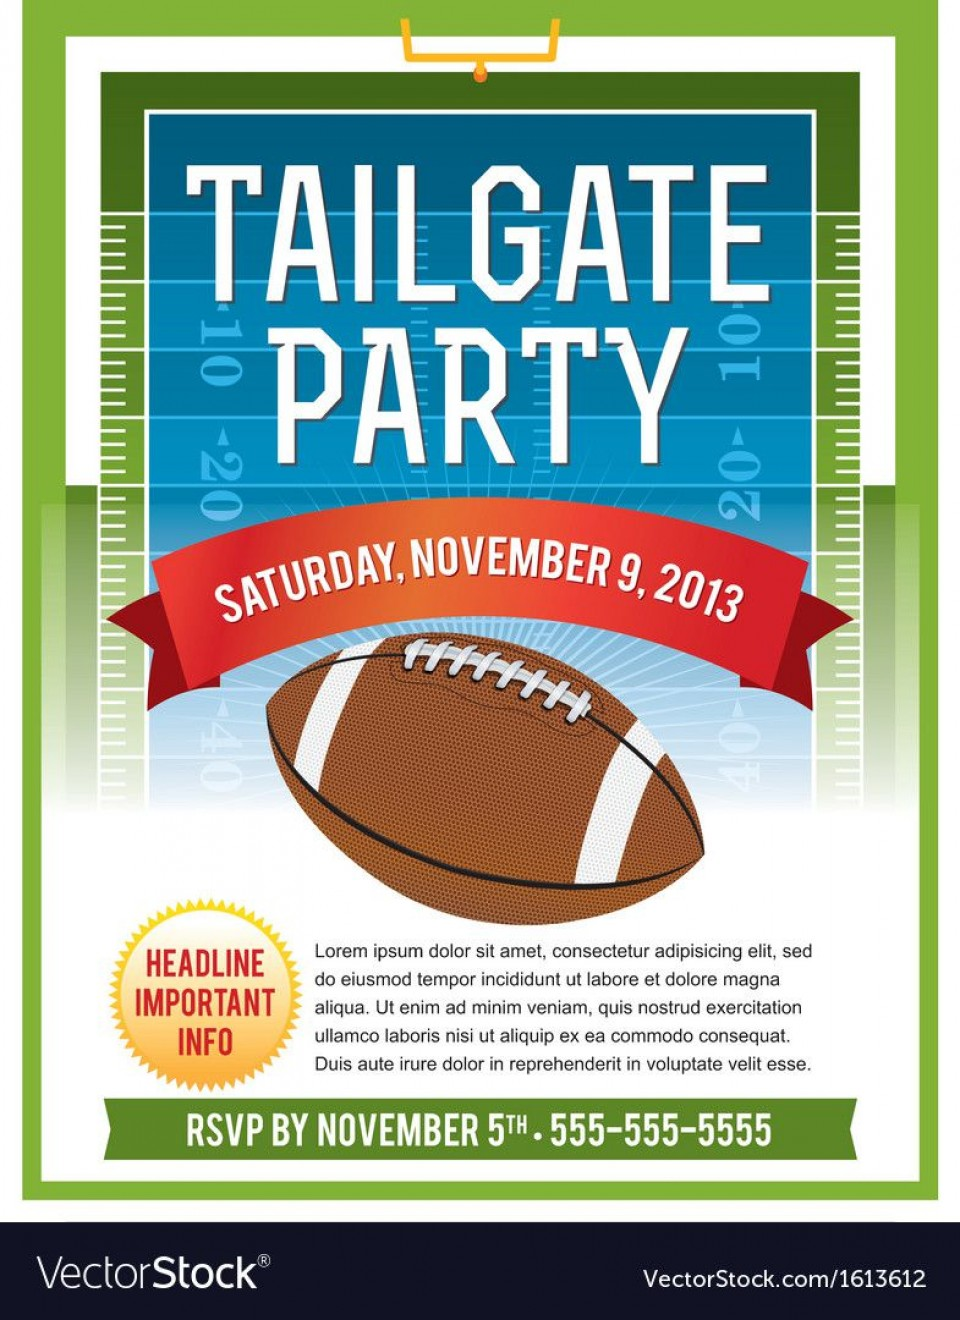 006 Excellent Free Tailgate Party Flyer Template Download Photo 960